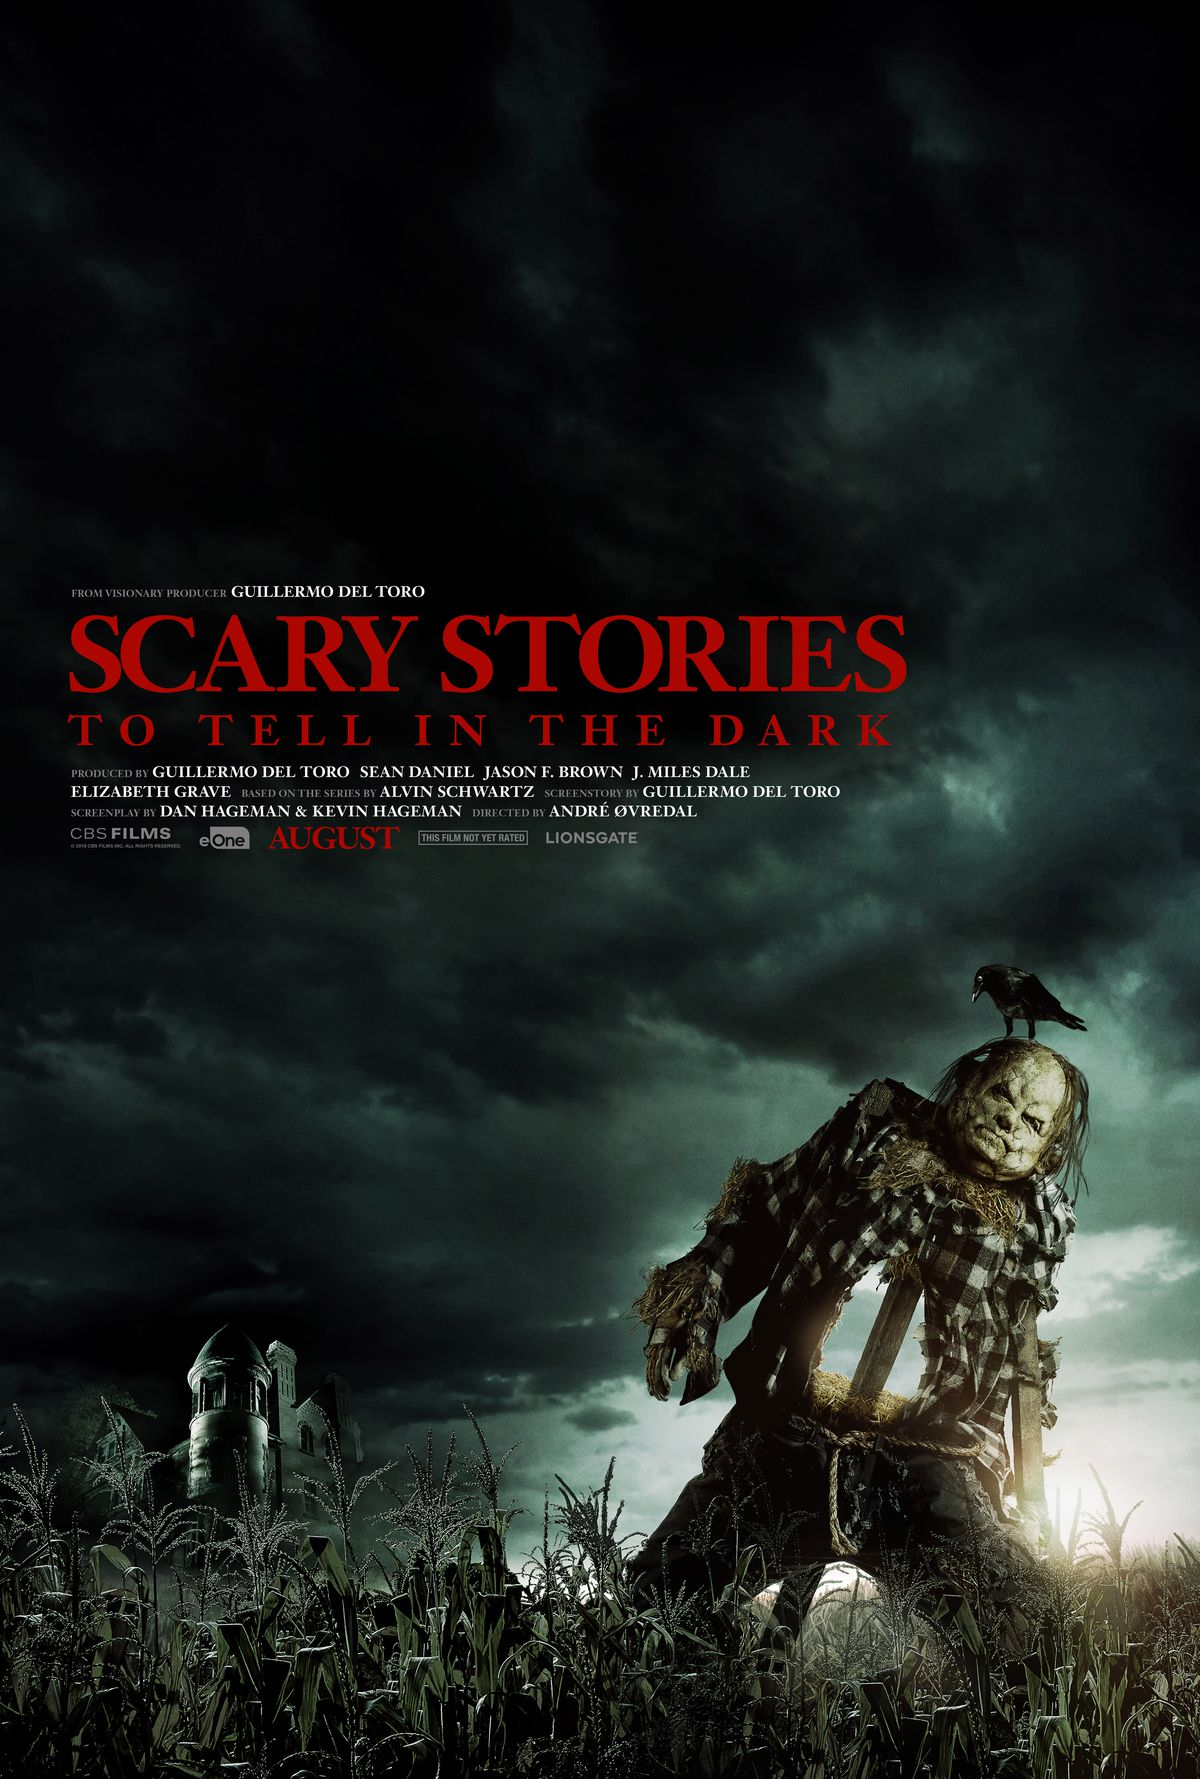 Scary stories that are told in the dark poster with Harold the Scarecrow